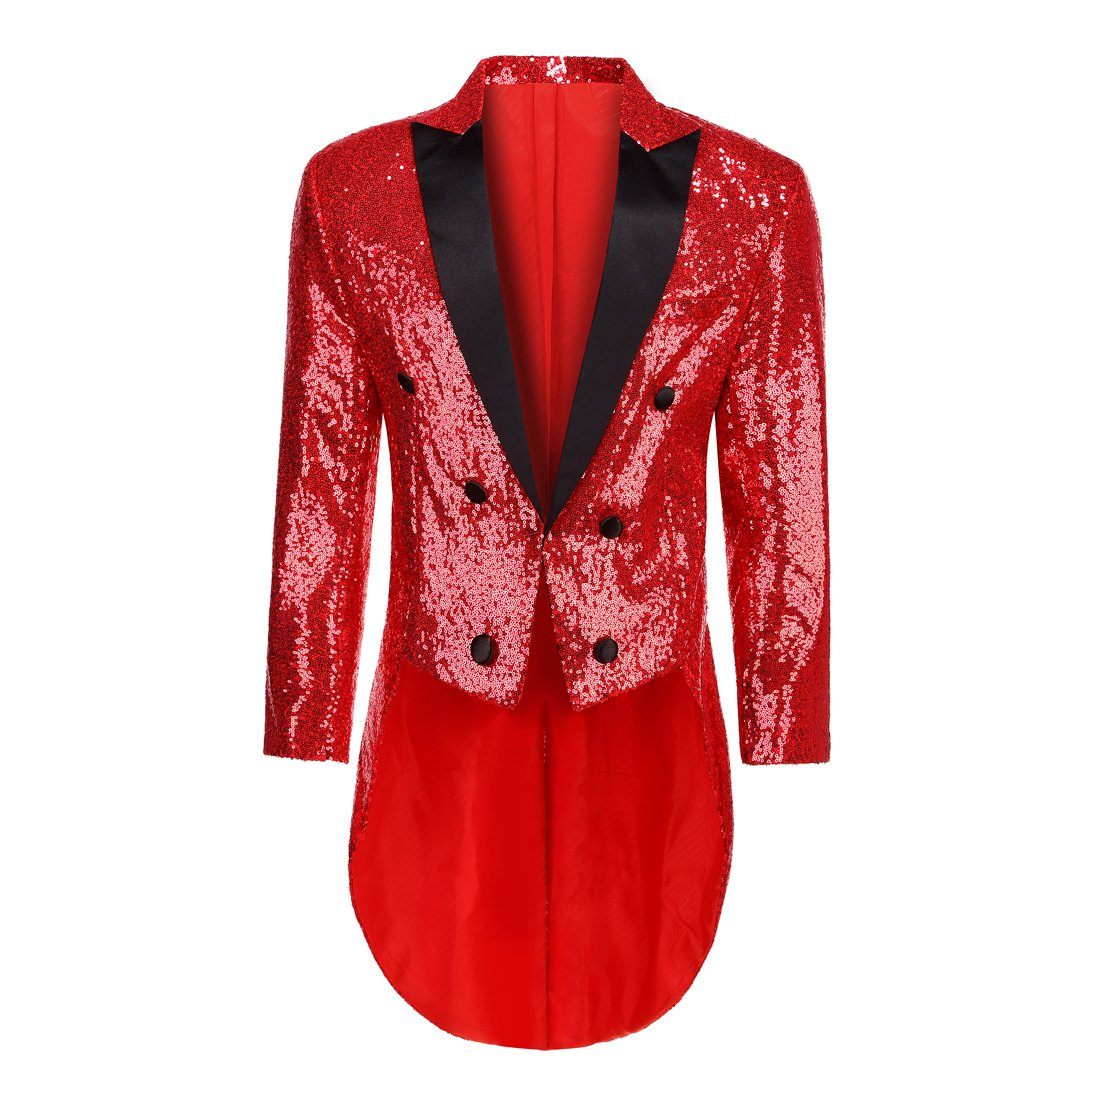 PYJTRL Mens Fashion Colorful Sequins Tailcoat Tuxedo